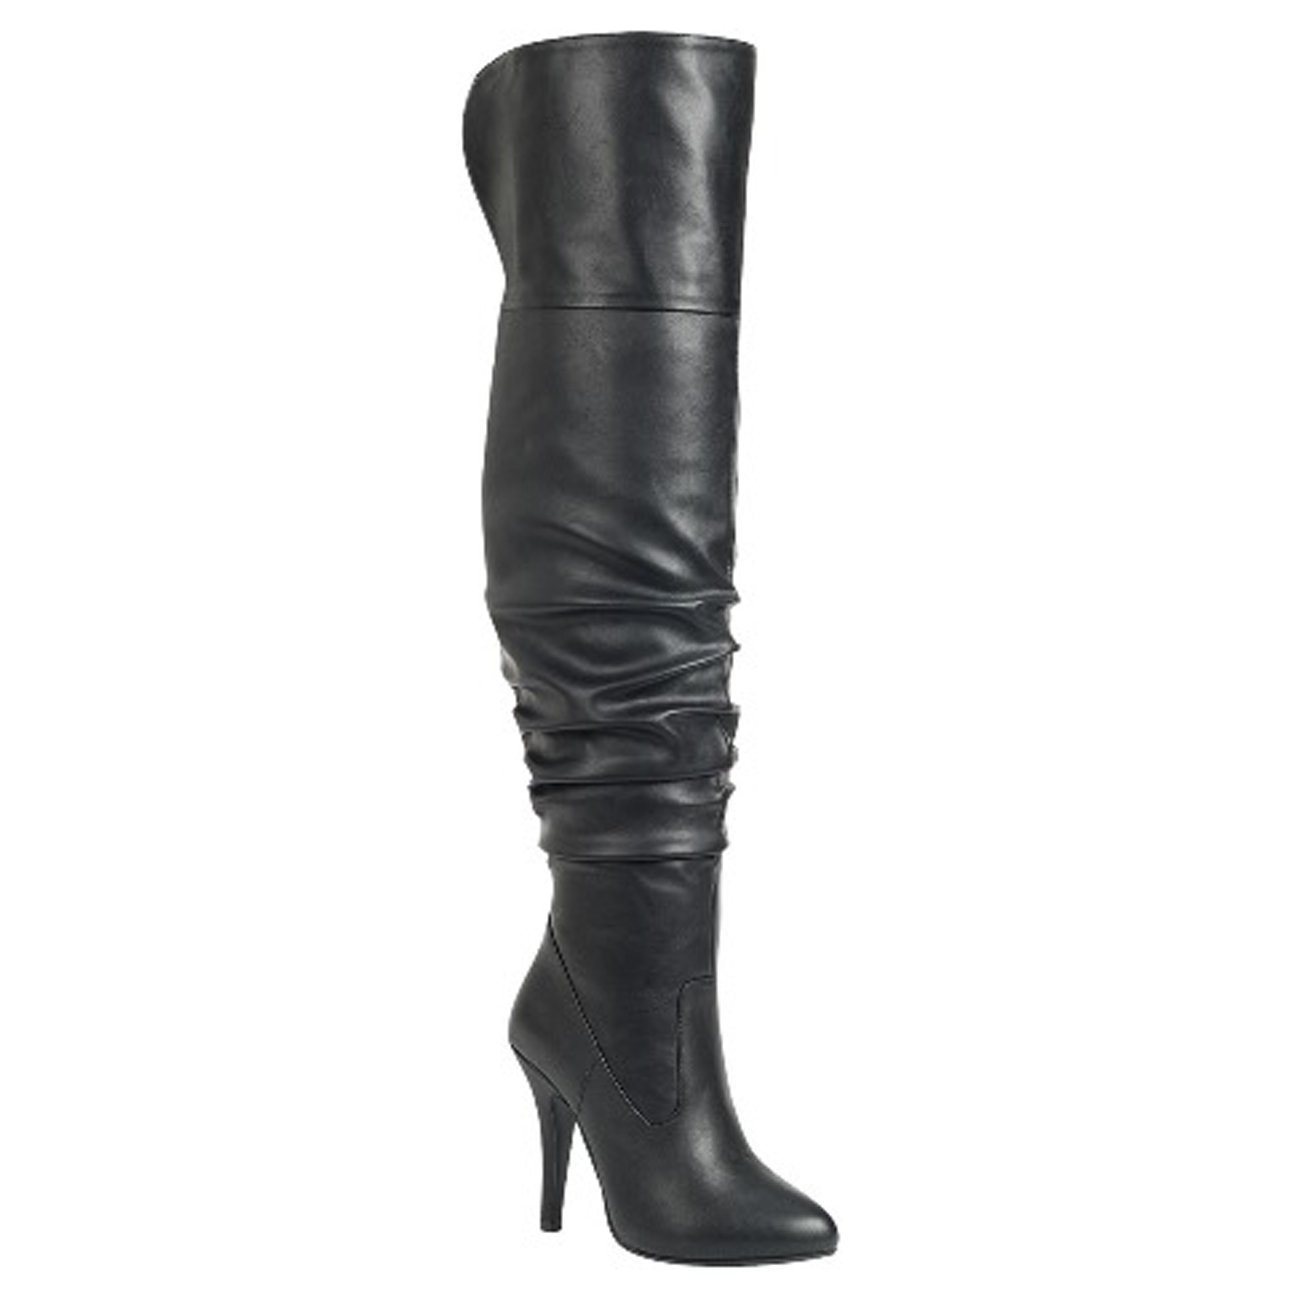 d53e797dd3dc9 Amazon.com | Forever Link Womens Focus-33 Vegan Leather Over The Knee  Fashion Boots | Shoes